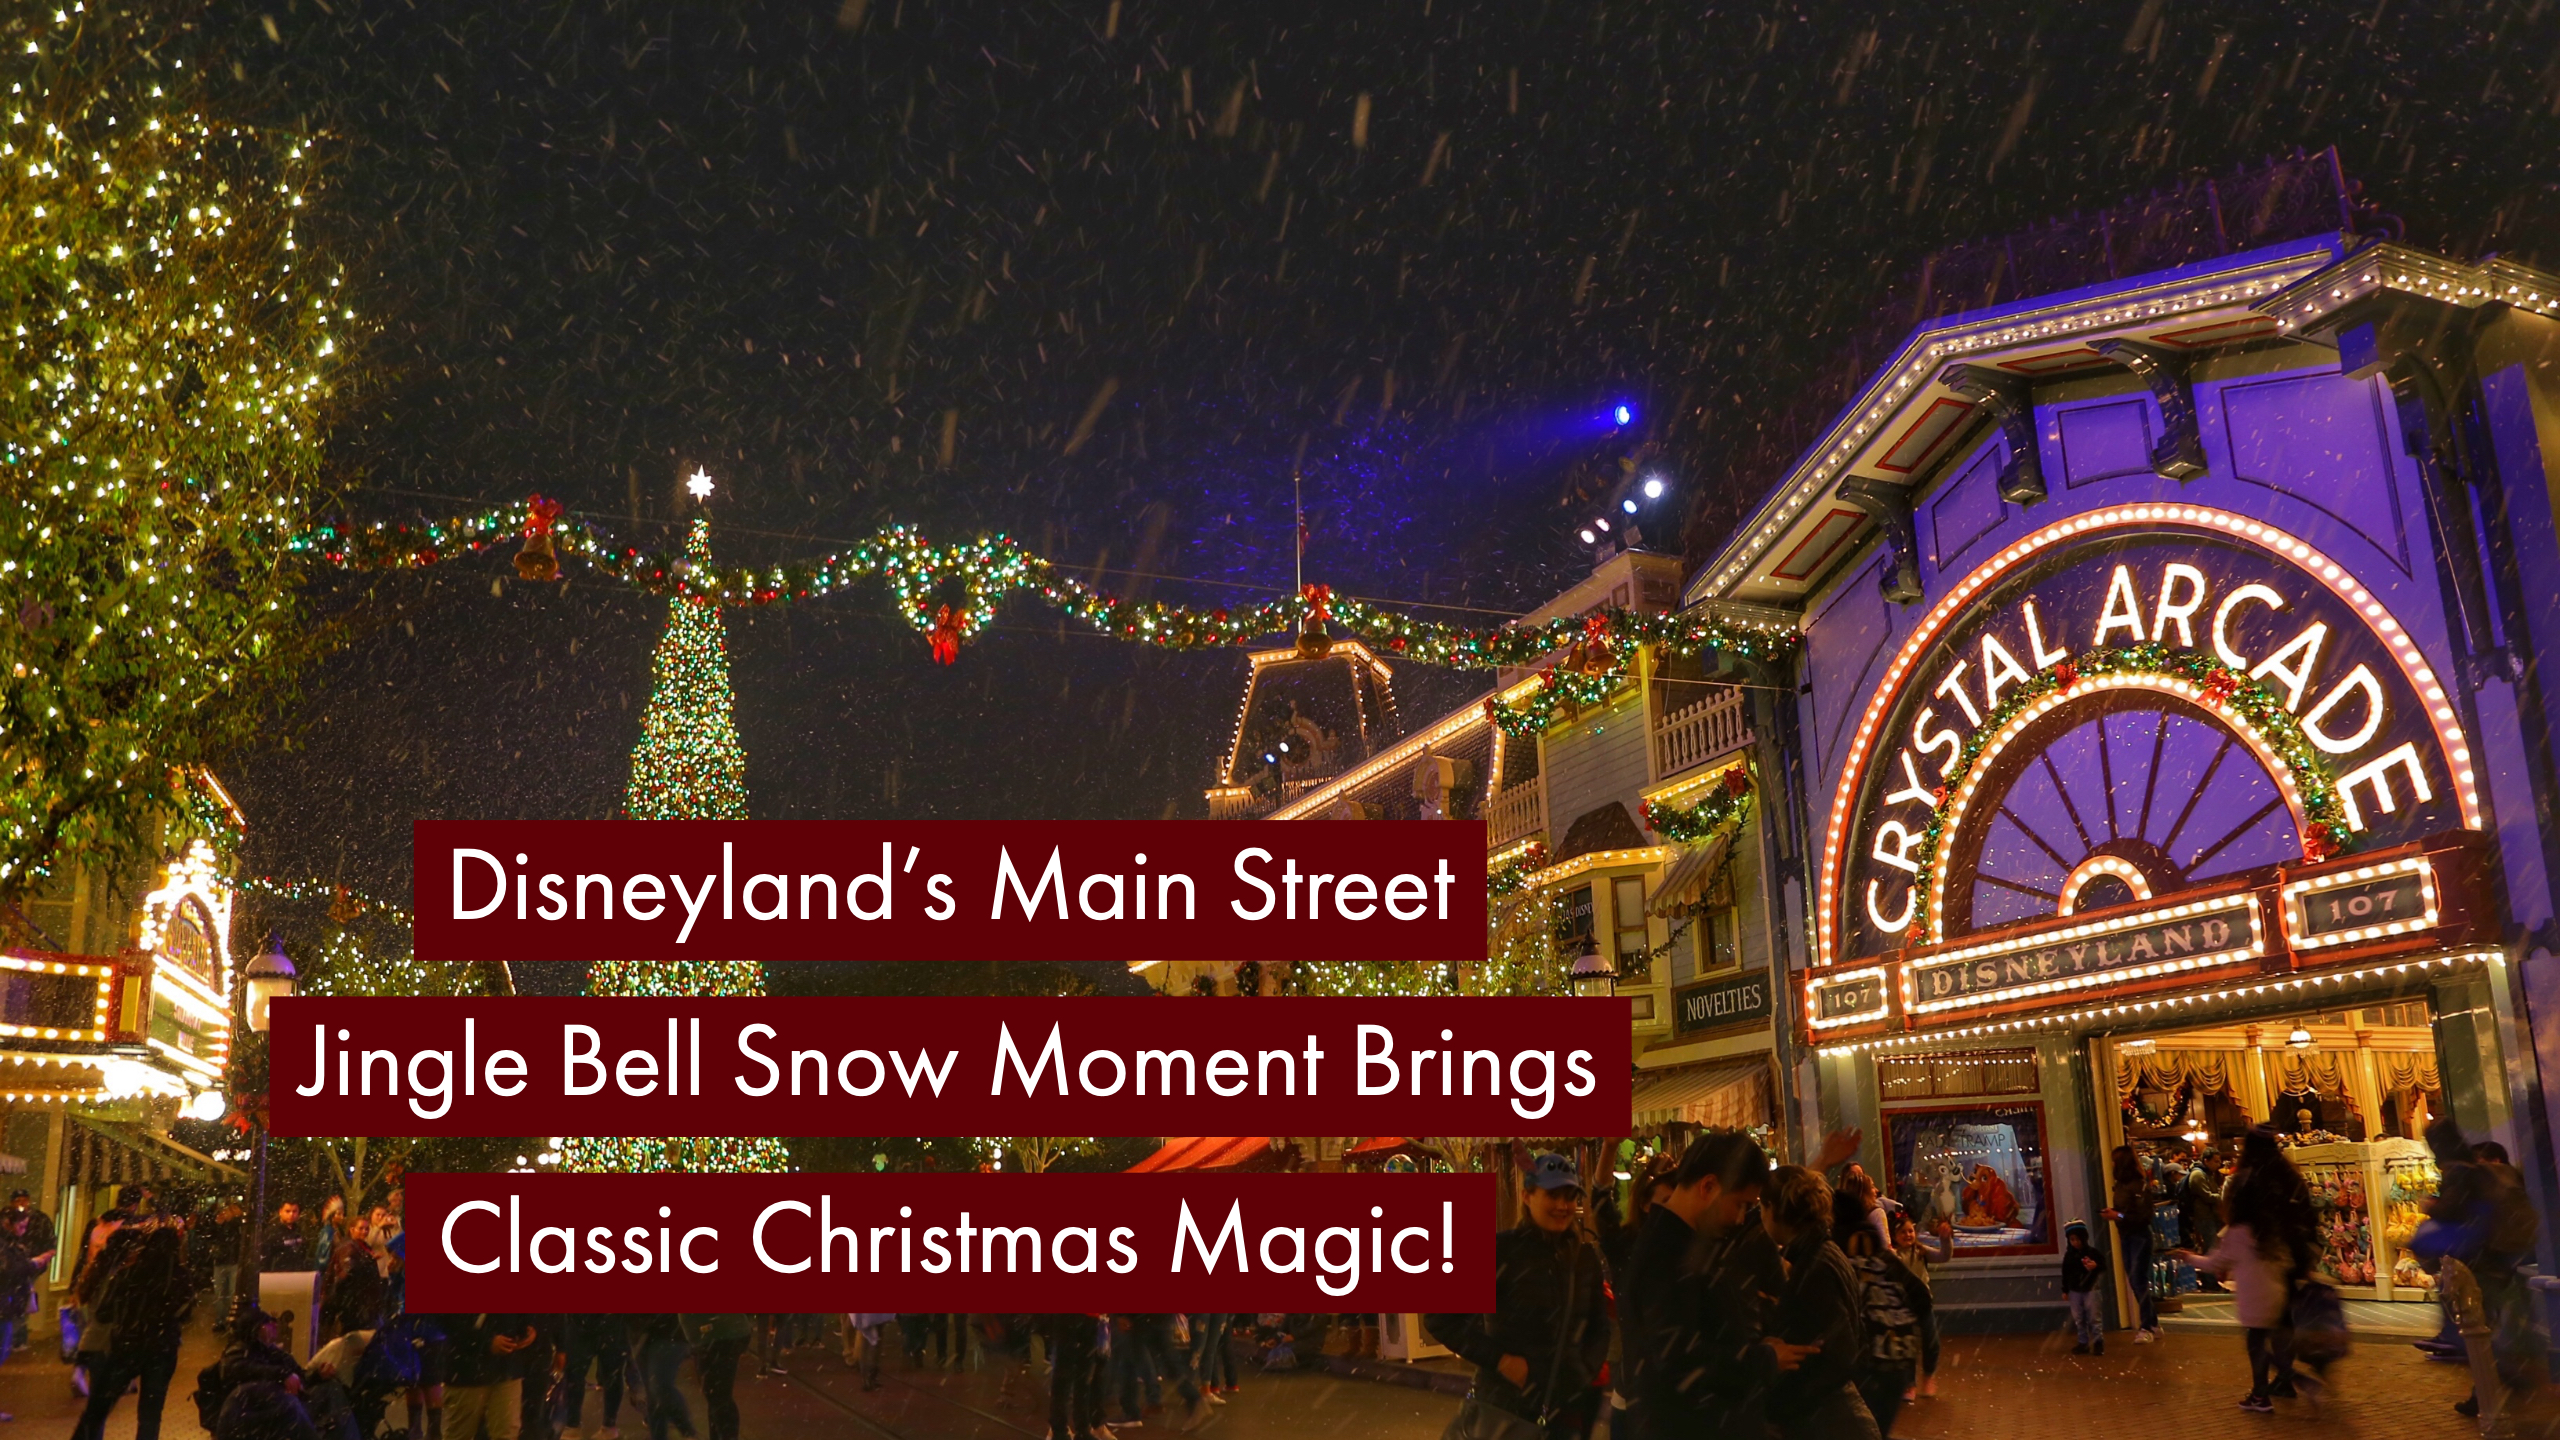 Disneyland's Main Street Magic Happens Nightly After Fireworks with Jingle Bell Snow Moments